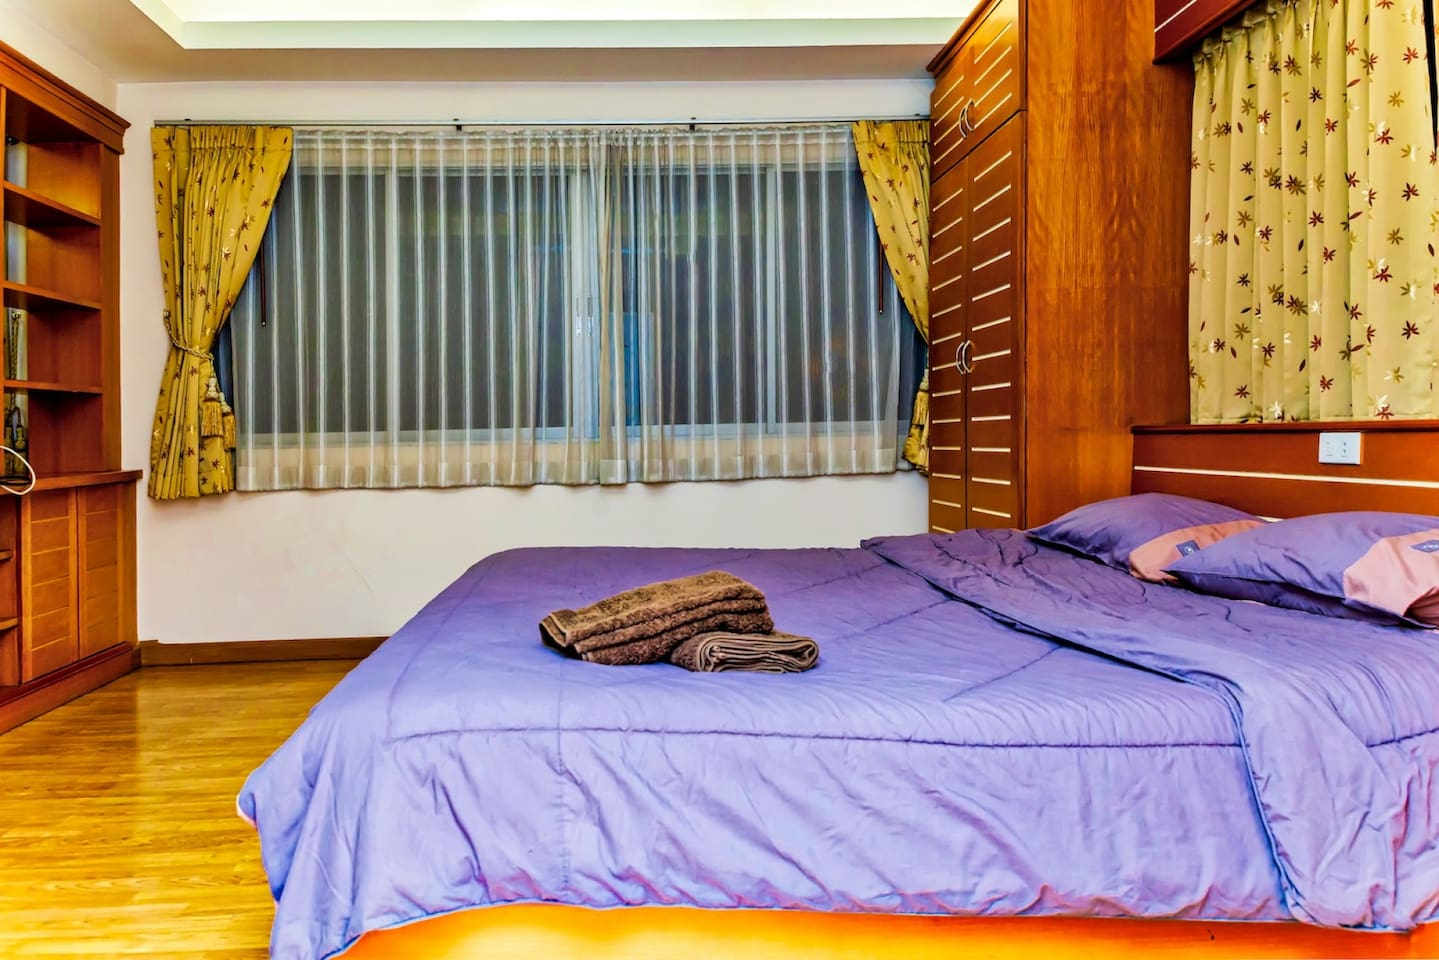 Apartment New 5 King Room in the Center of Pattaya City  Best area  photo 18752409